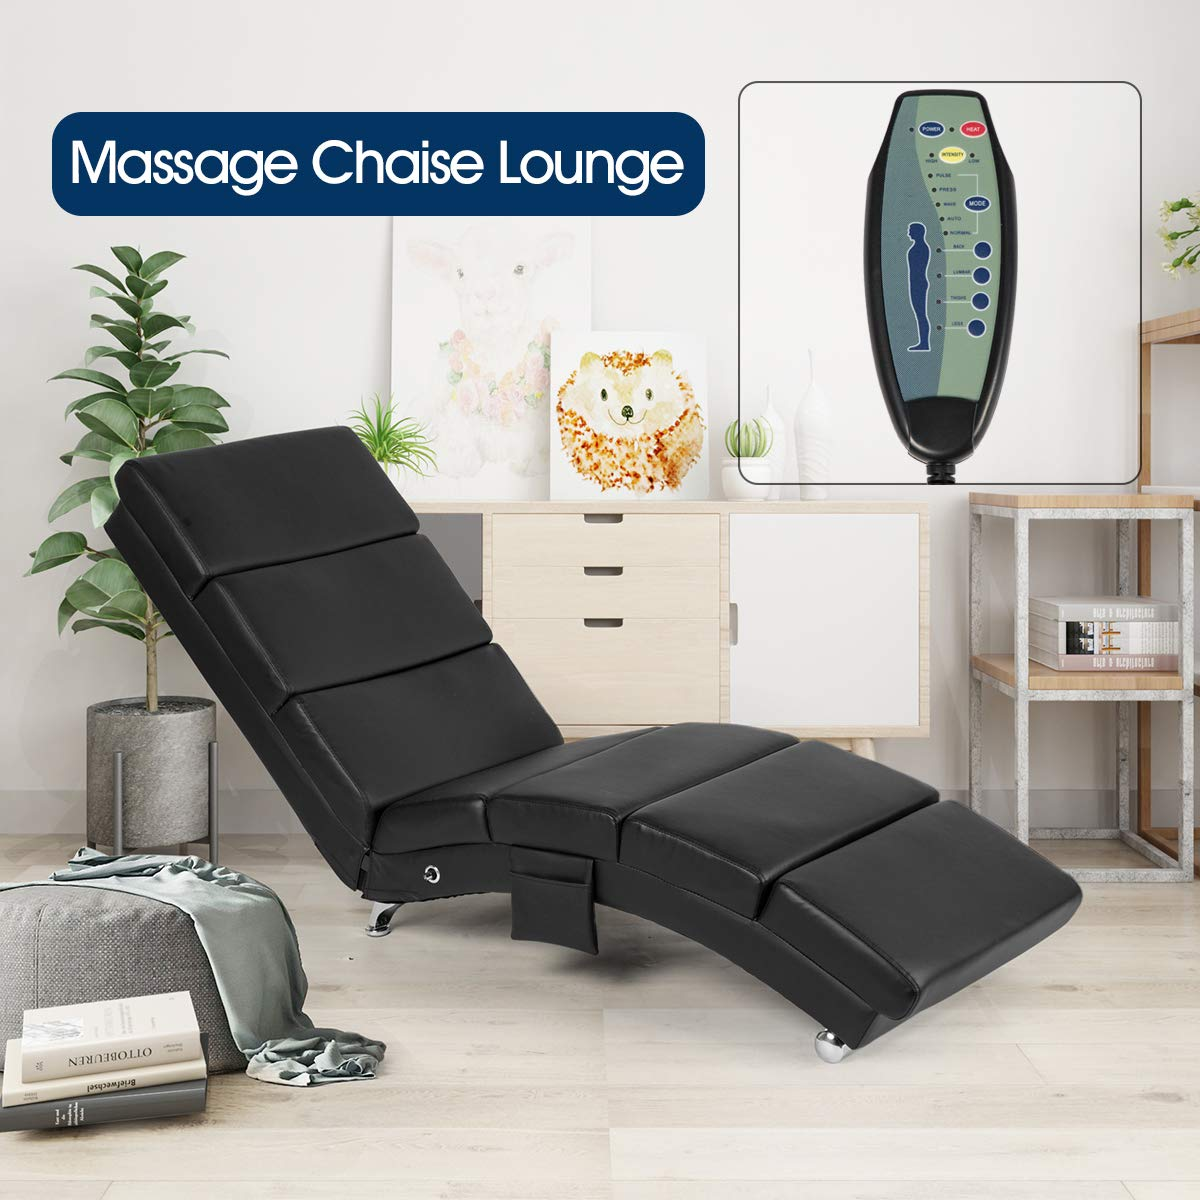 AECOJOY Massage Chaise Lounge Couch Black Modern Indoor Chaise Lounge Chair Living Room Chaise Lounger with Vibration Heat Fuction by AECOJOY